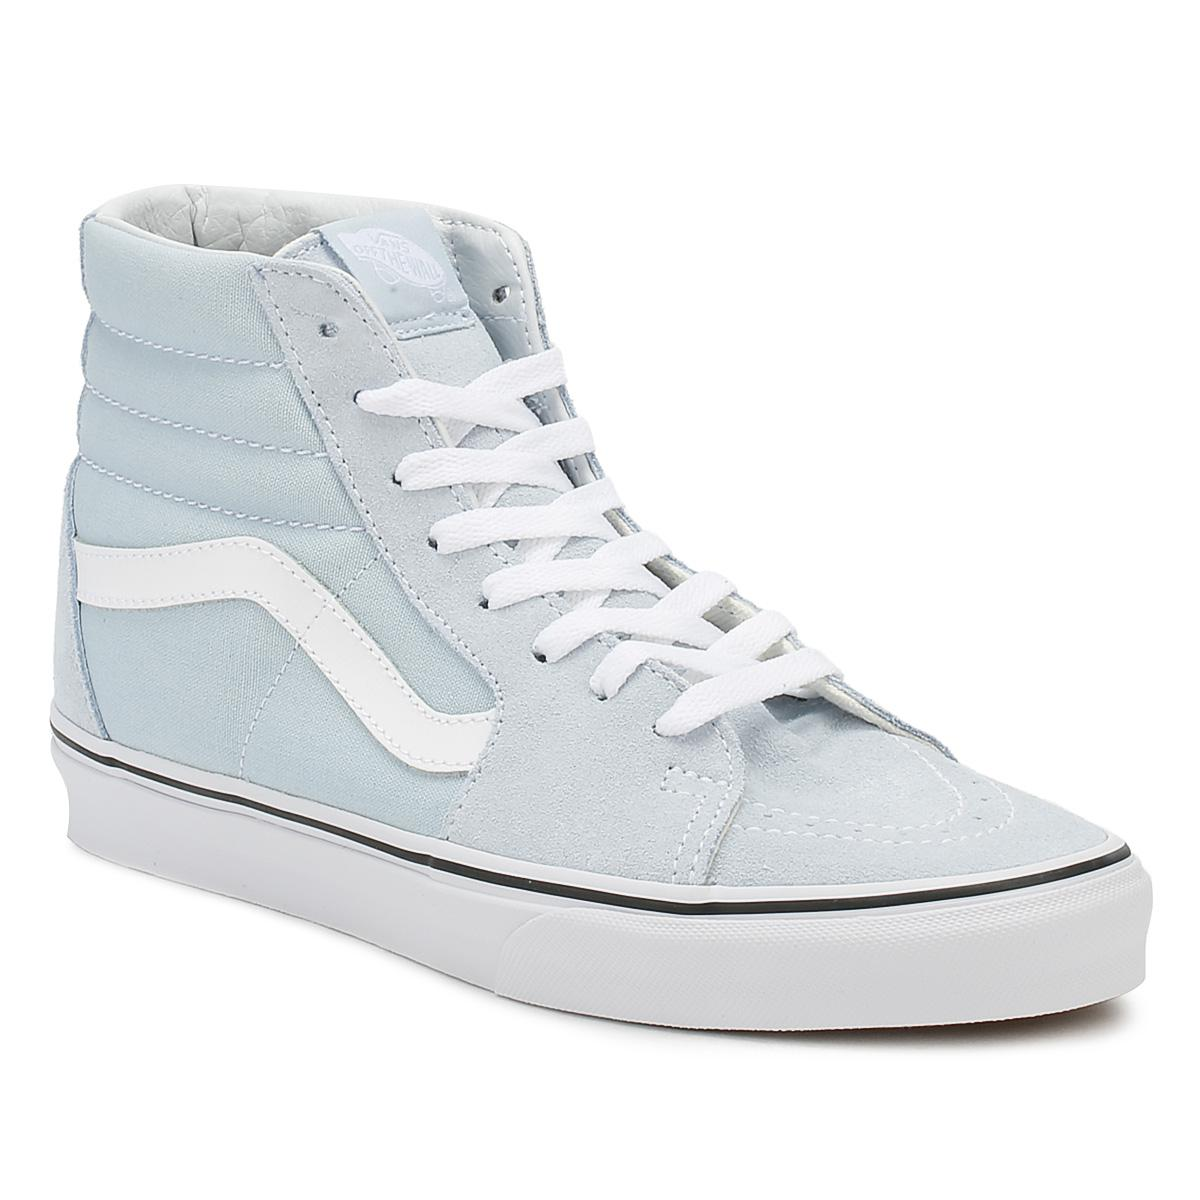 3dc6e9a1fa5 Vans Womens Baby Blue   True White Sk8-hi Trainers in Blue - Lyst